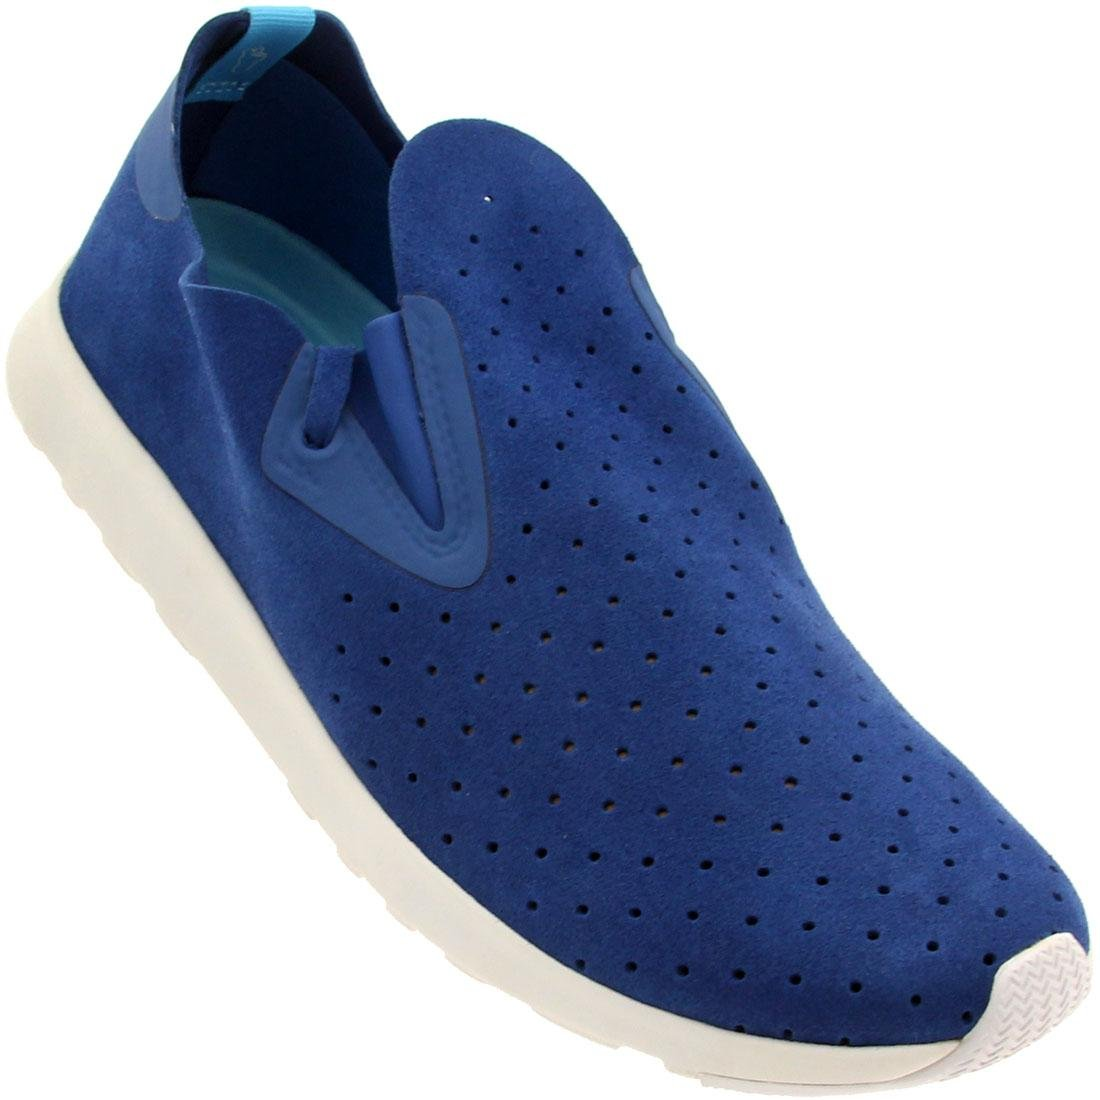 Native Blau/Shell , Herren Schnürhalbschuhe Blau Blau/Shell Native Rubber fd91c8